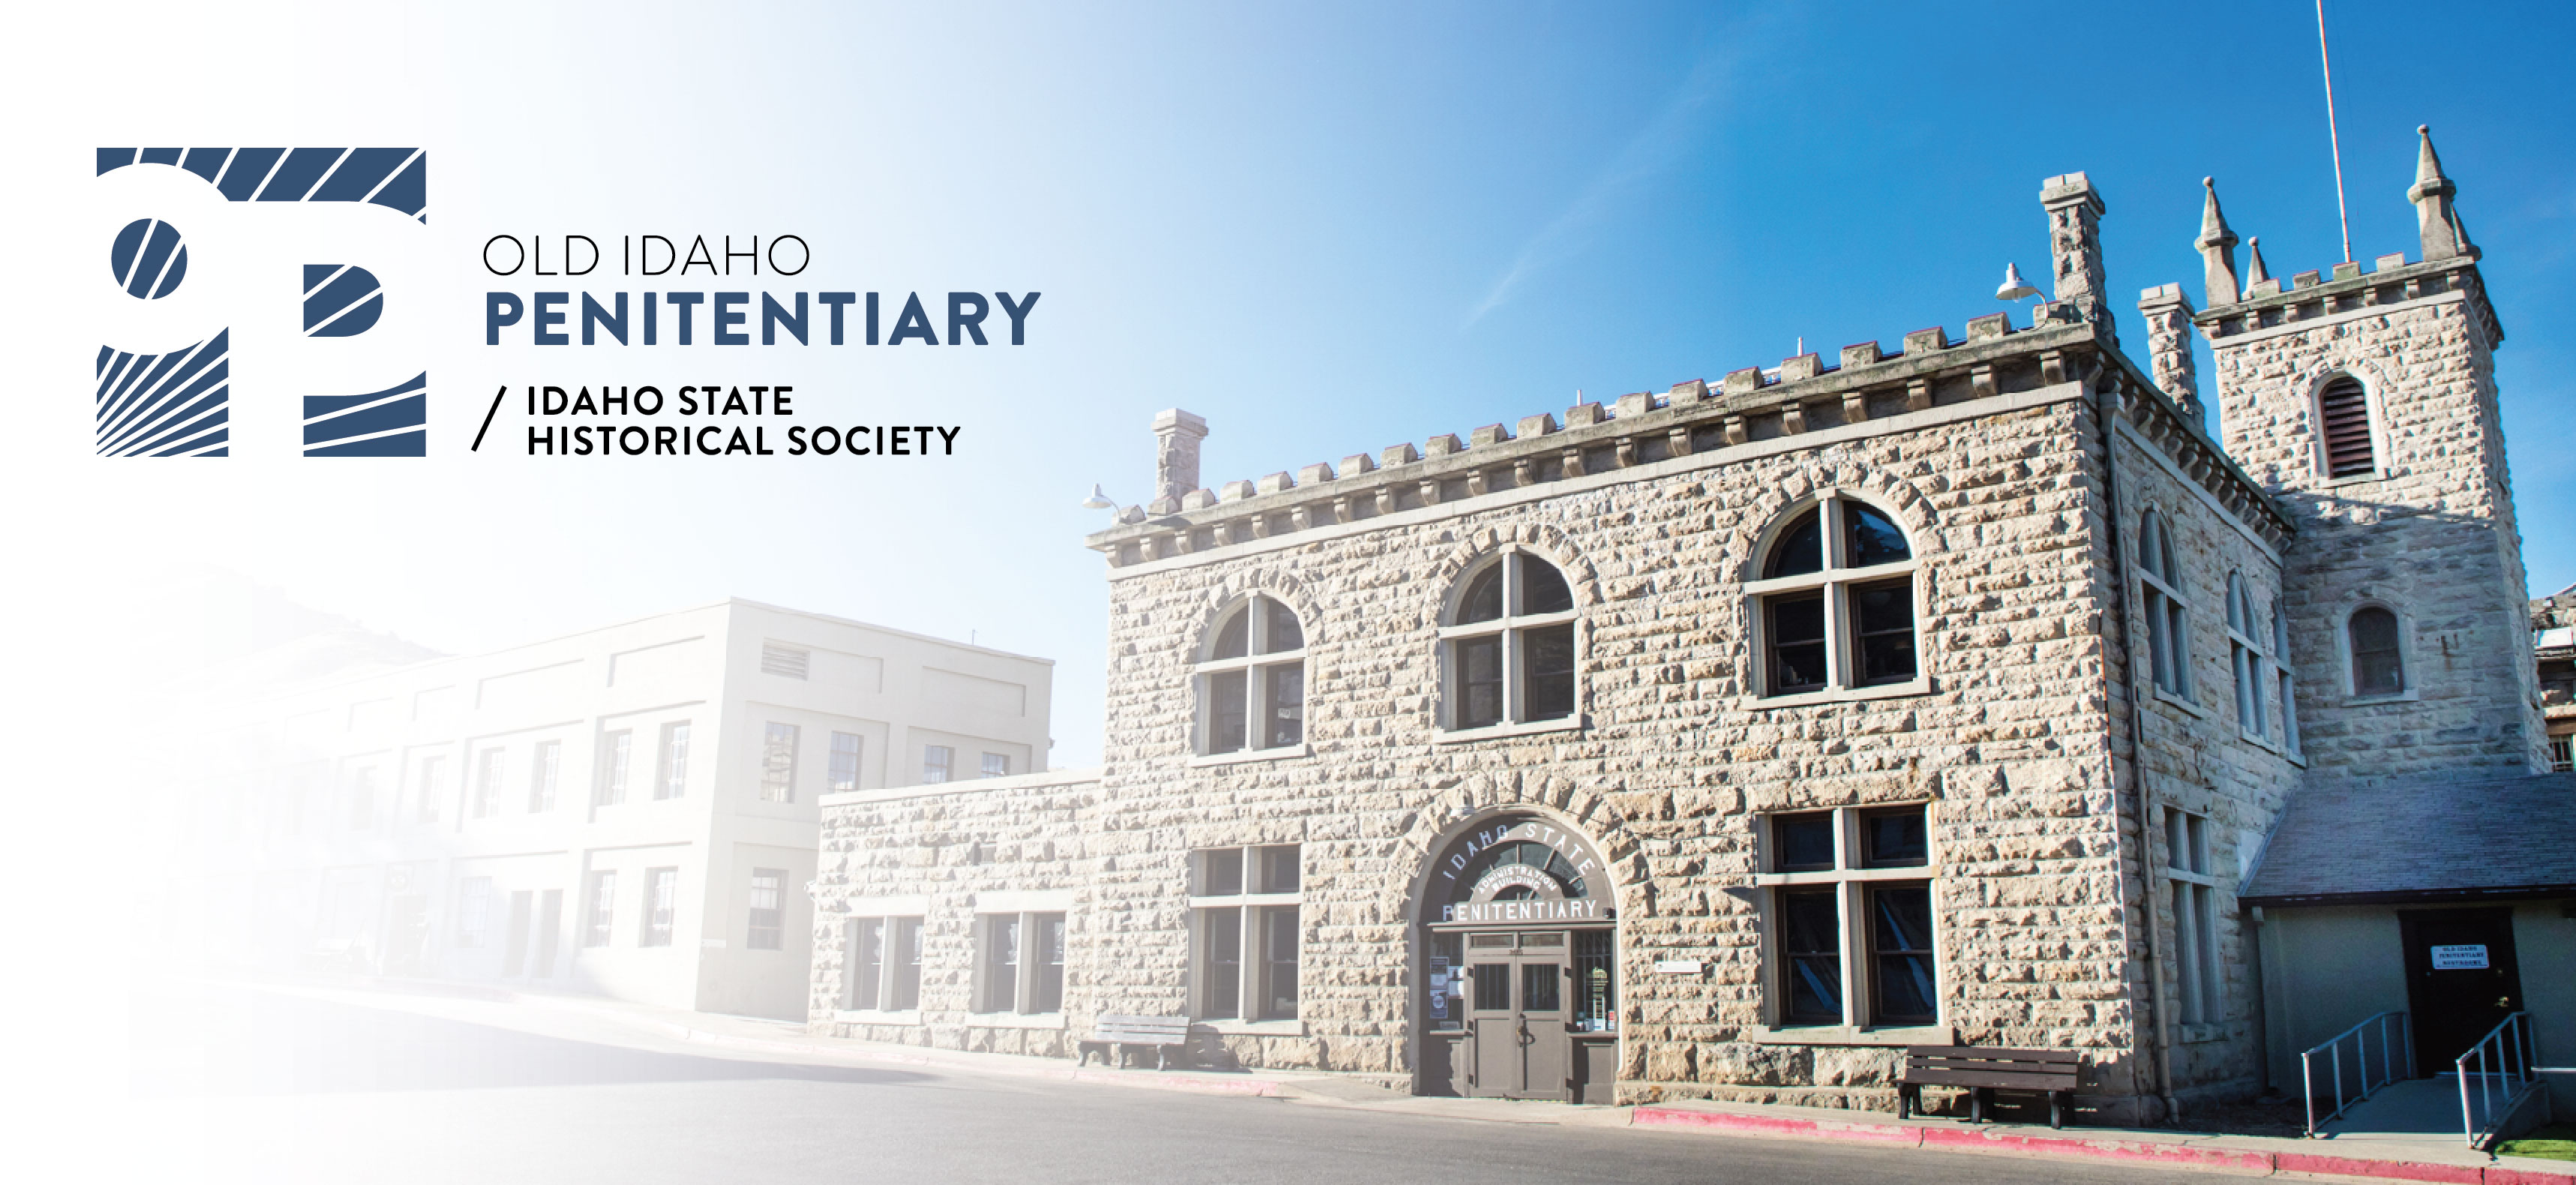 Old Idaho Penitentiary Logo and Entrance